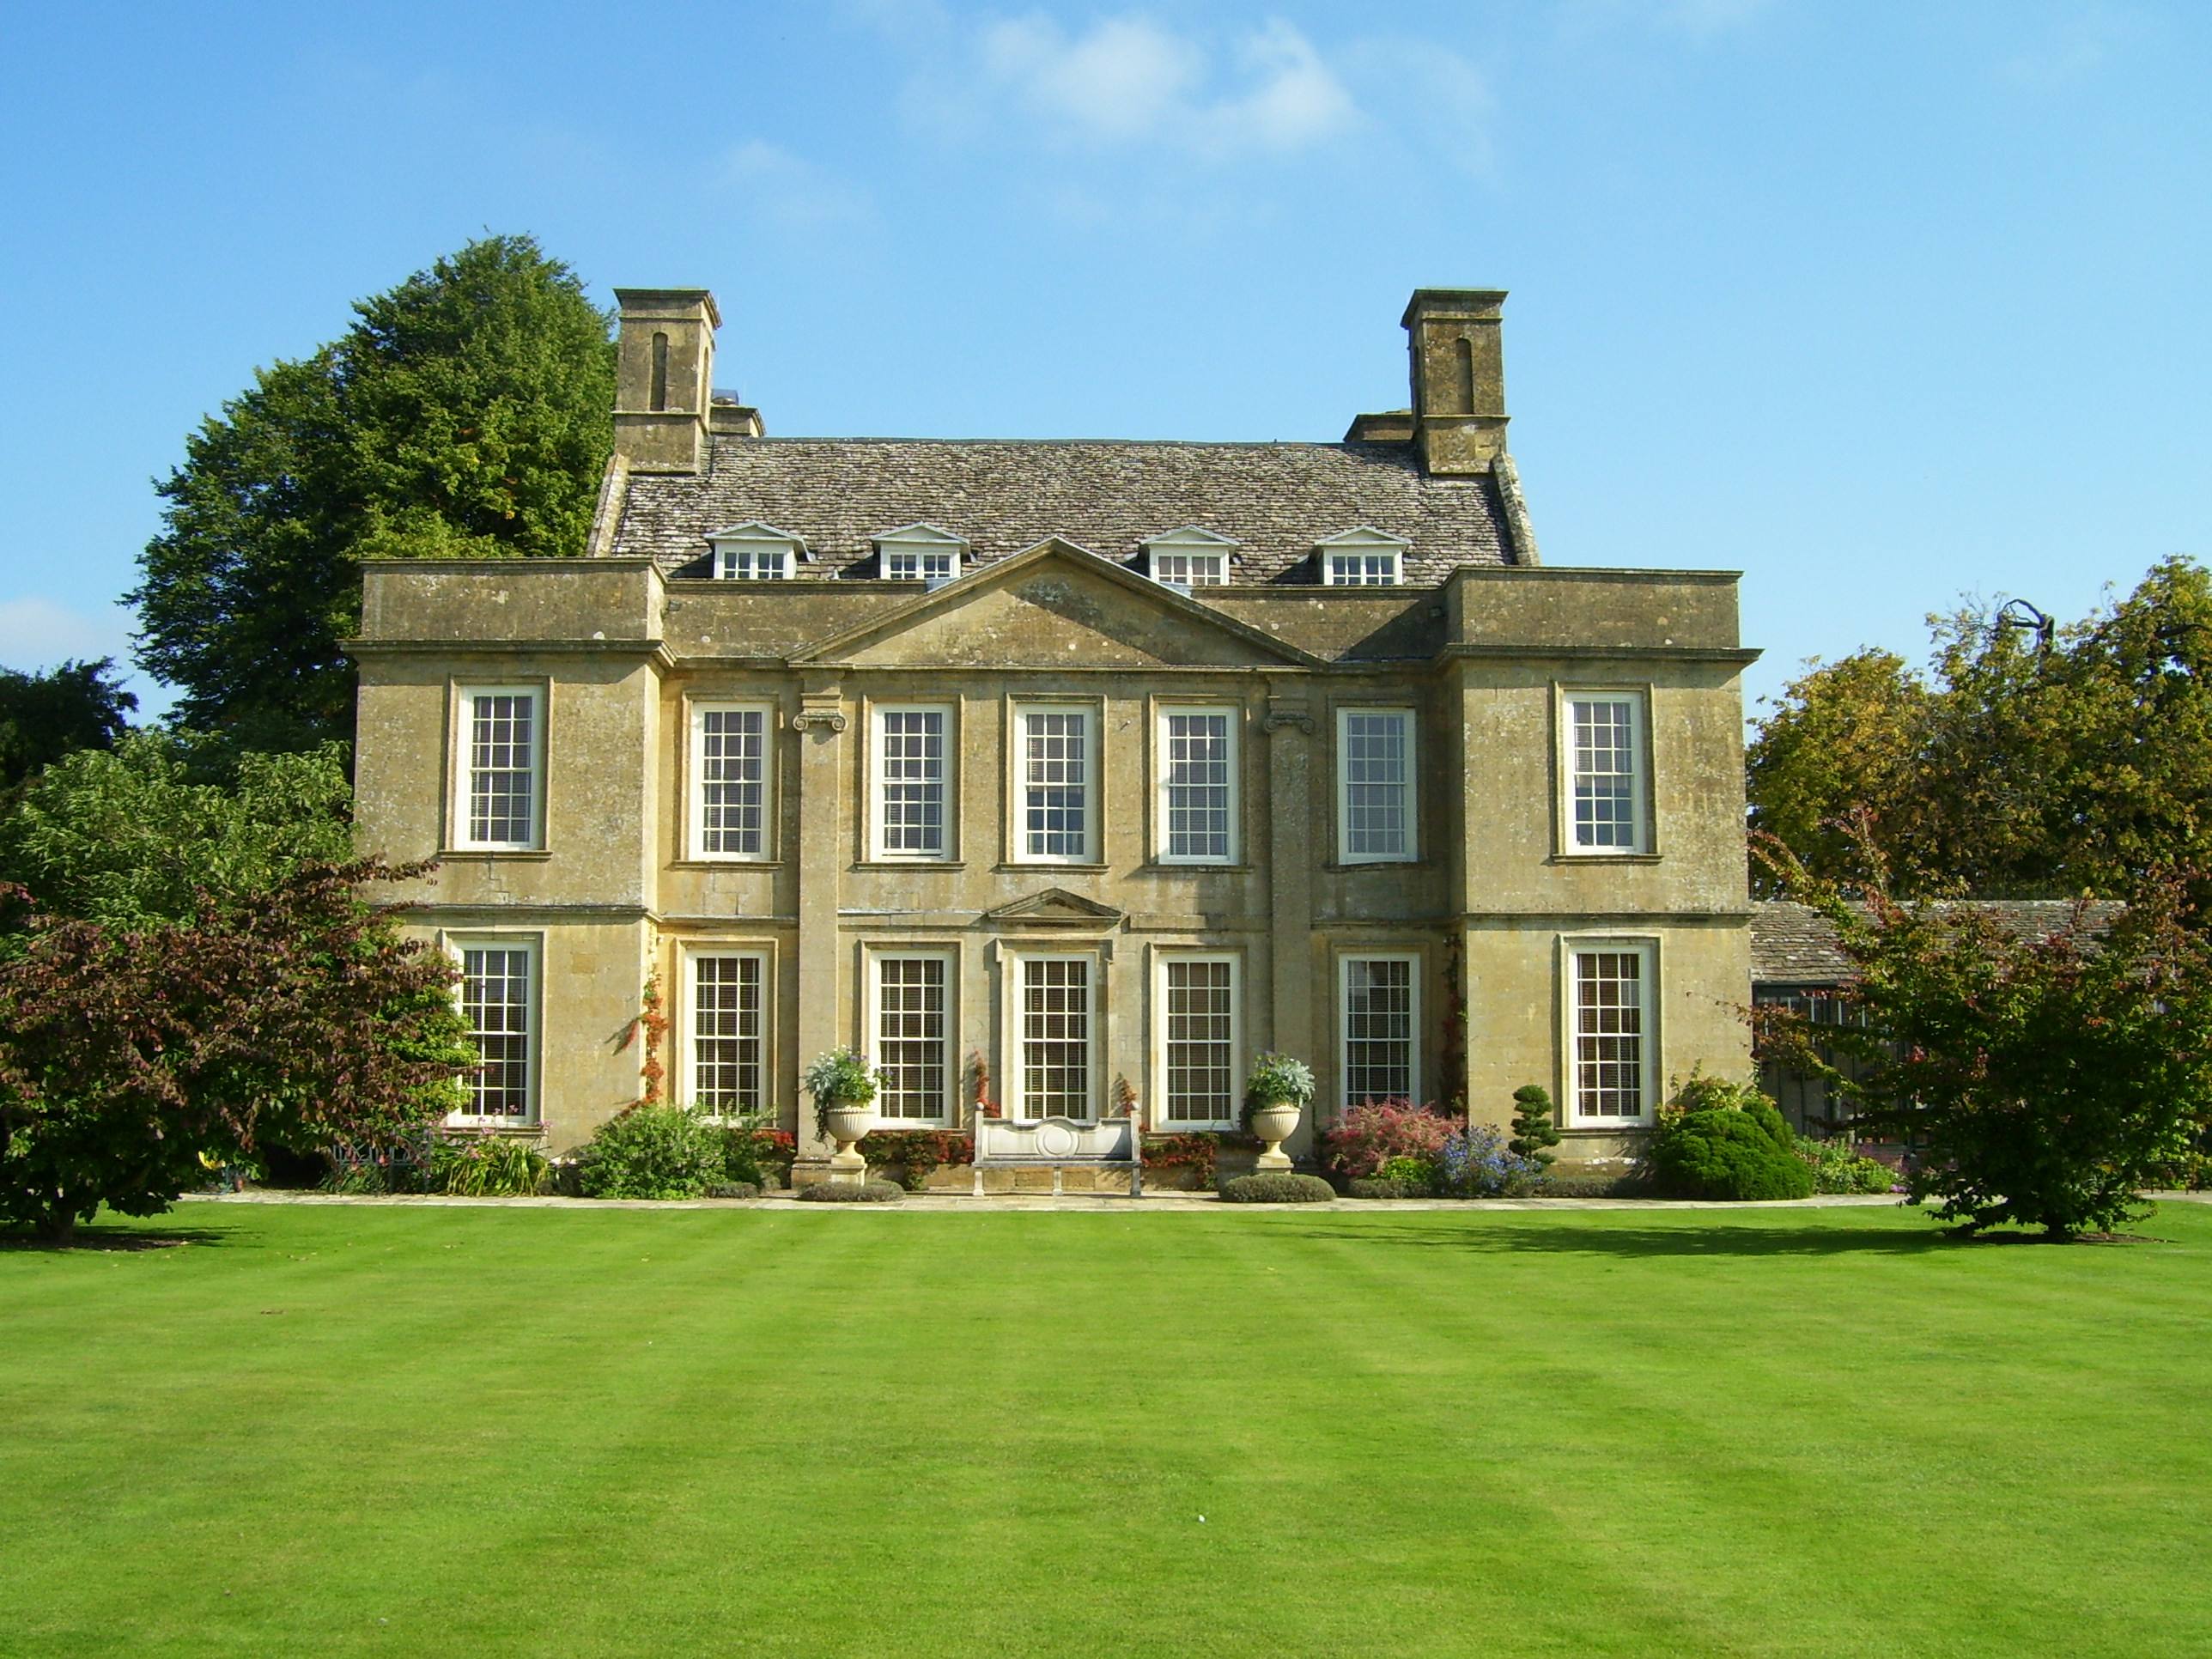 Bourton Manor | Carpe diem